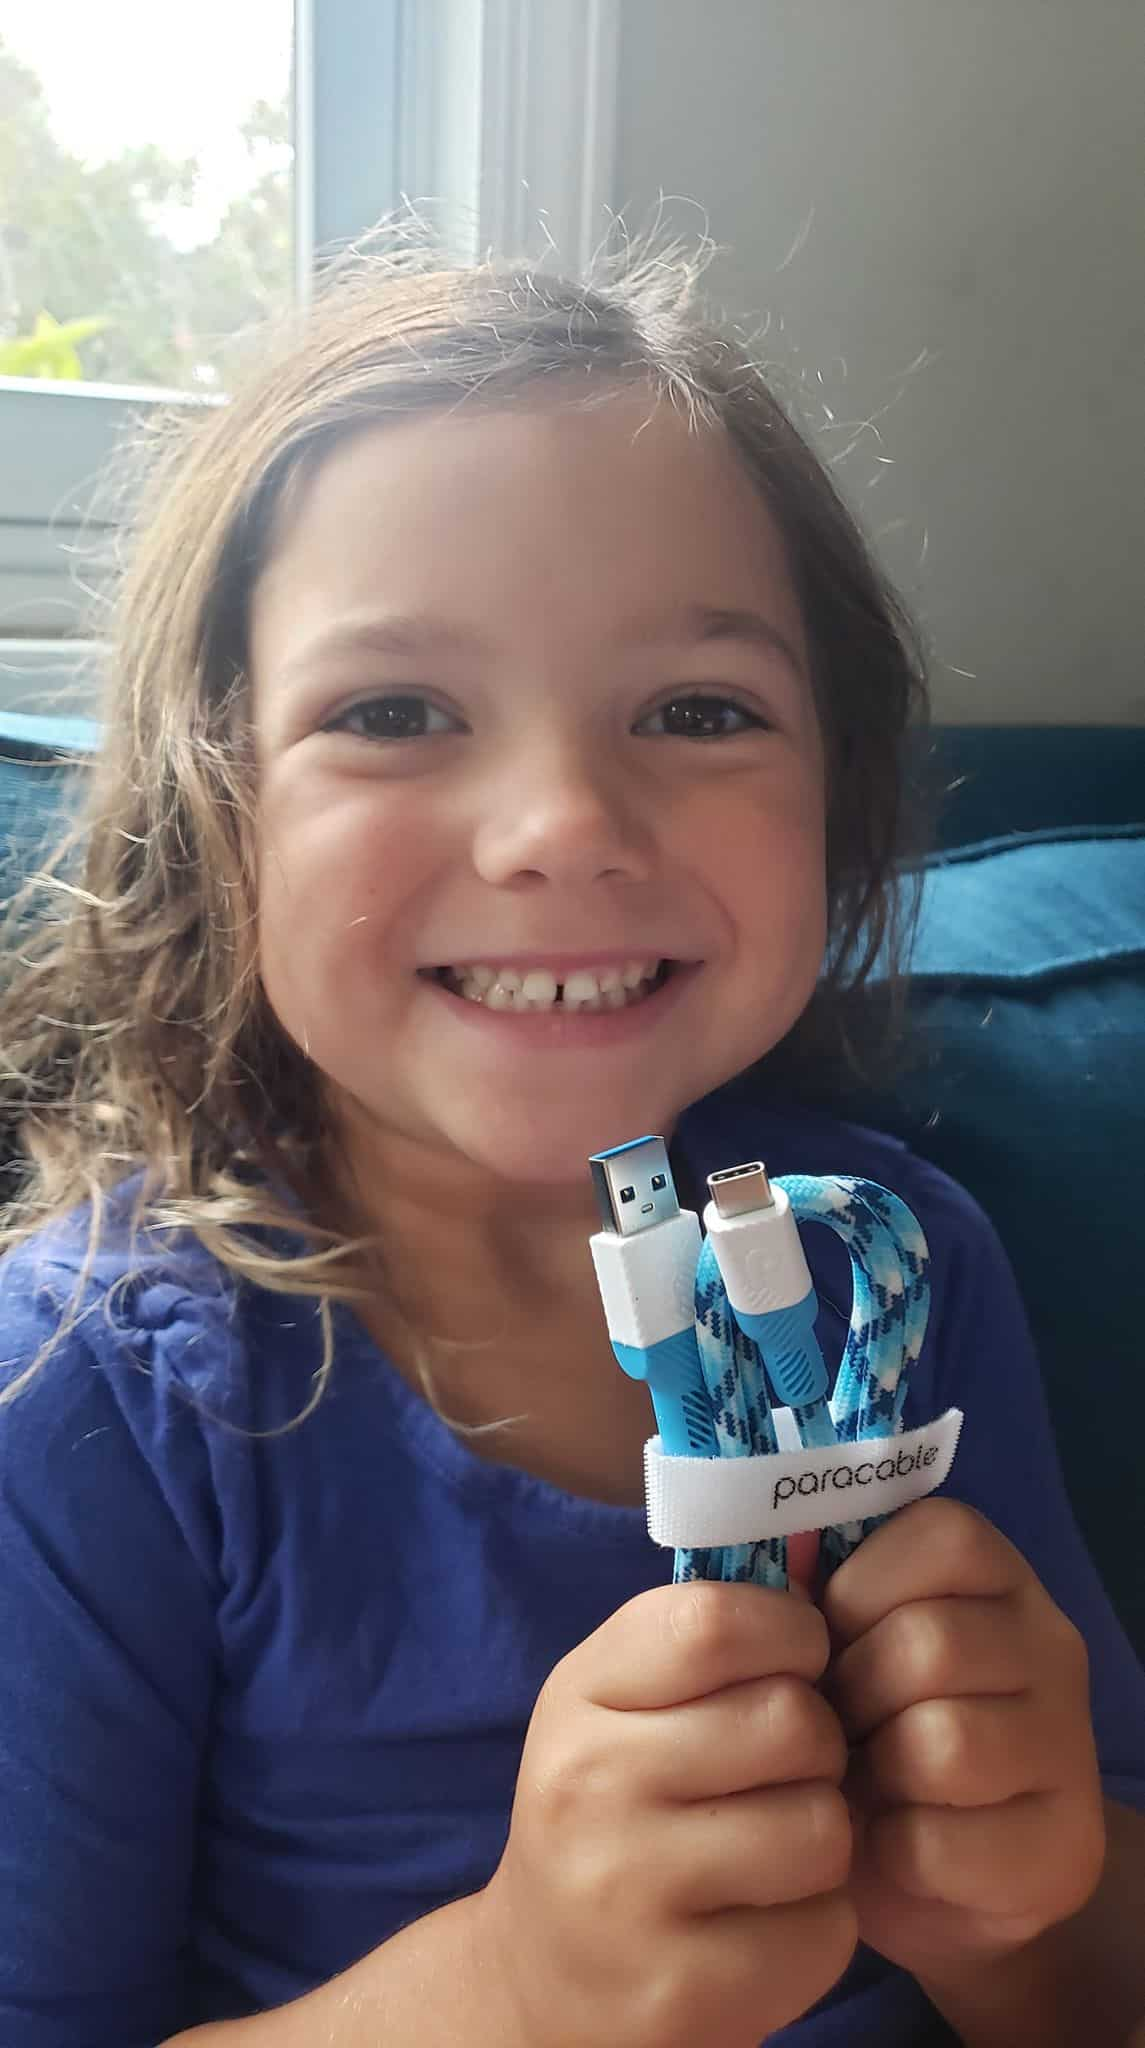 Smiling little girl with baby blue paracord cable.